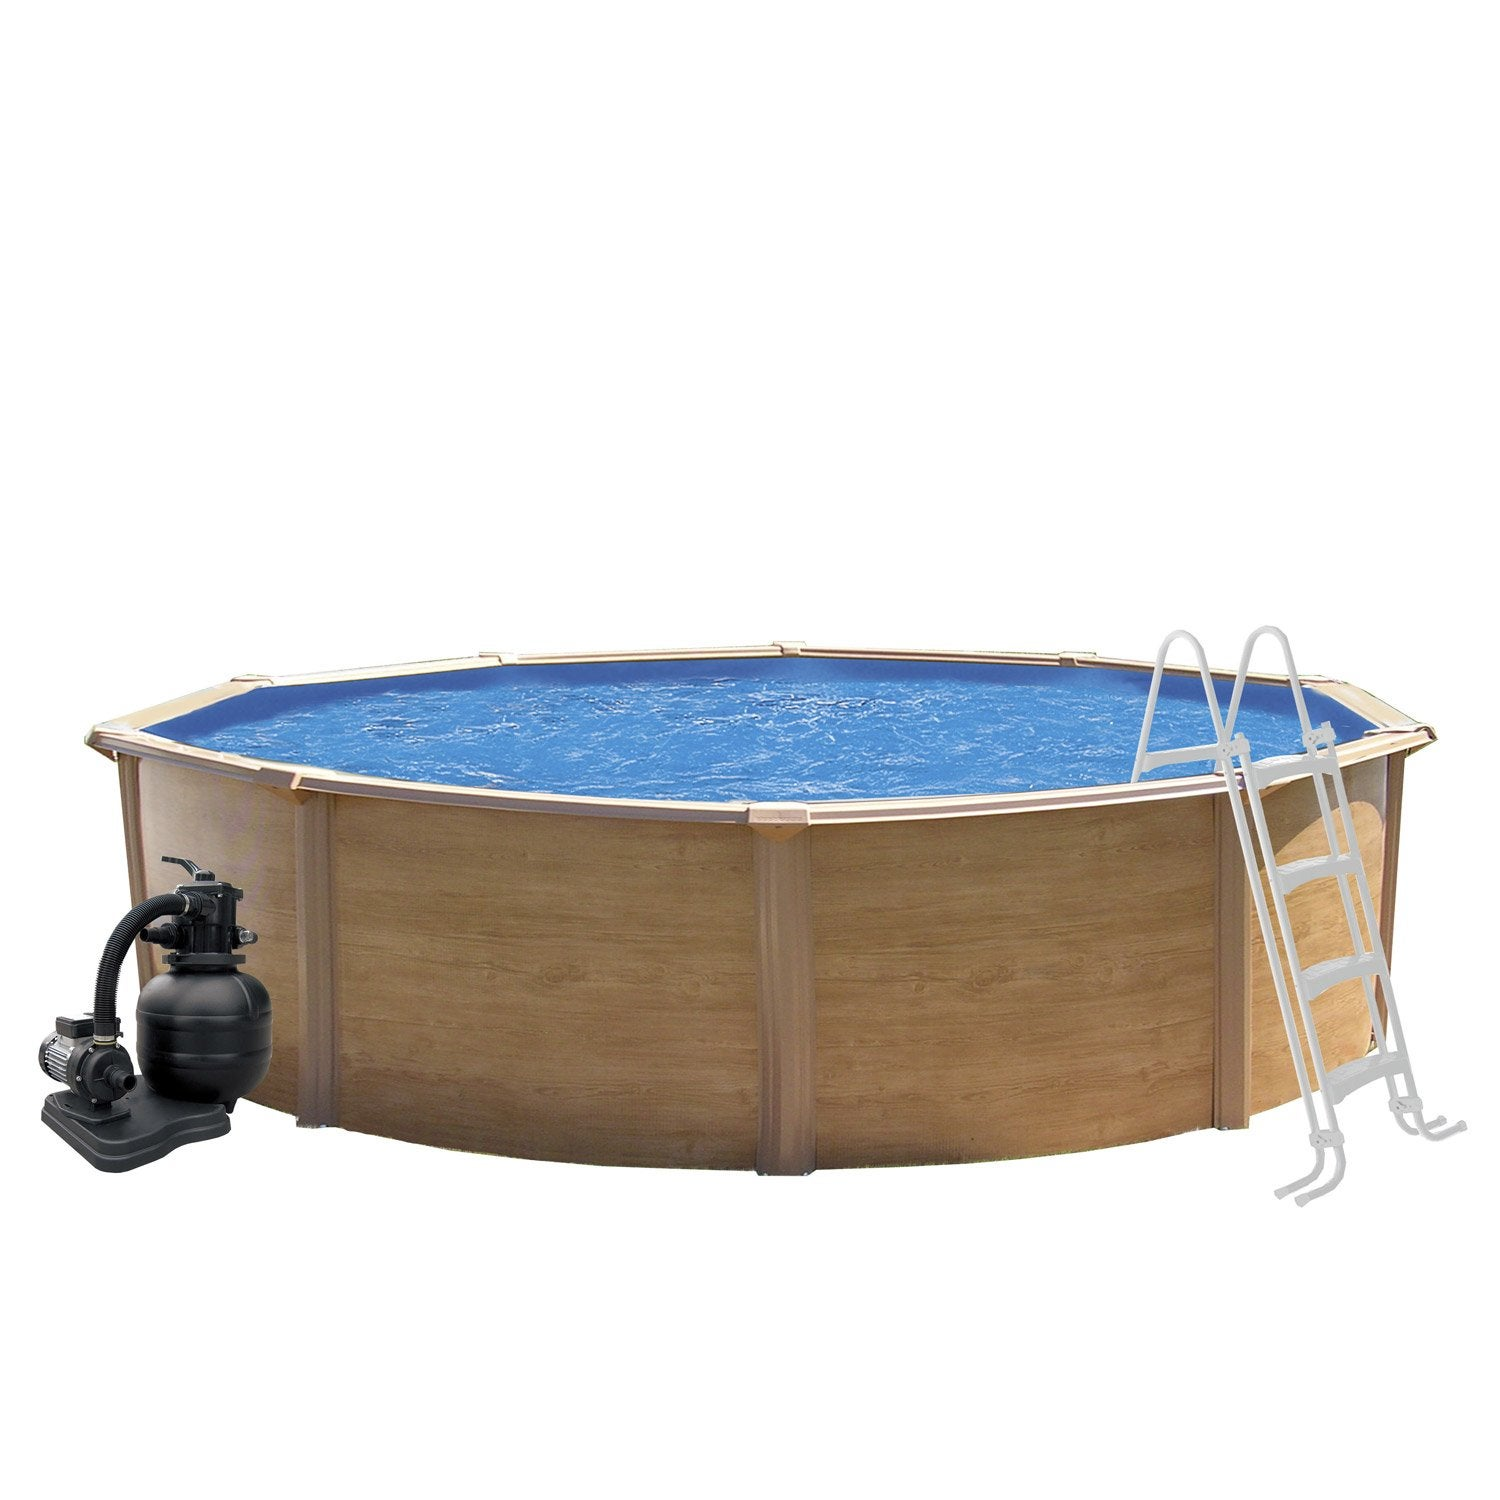 Piscine autoporte leroy merlin piscine miami en bois for Aspirateur piscine leroy merlin